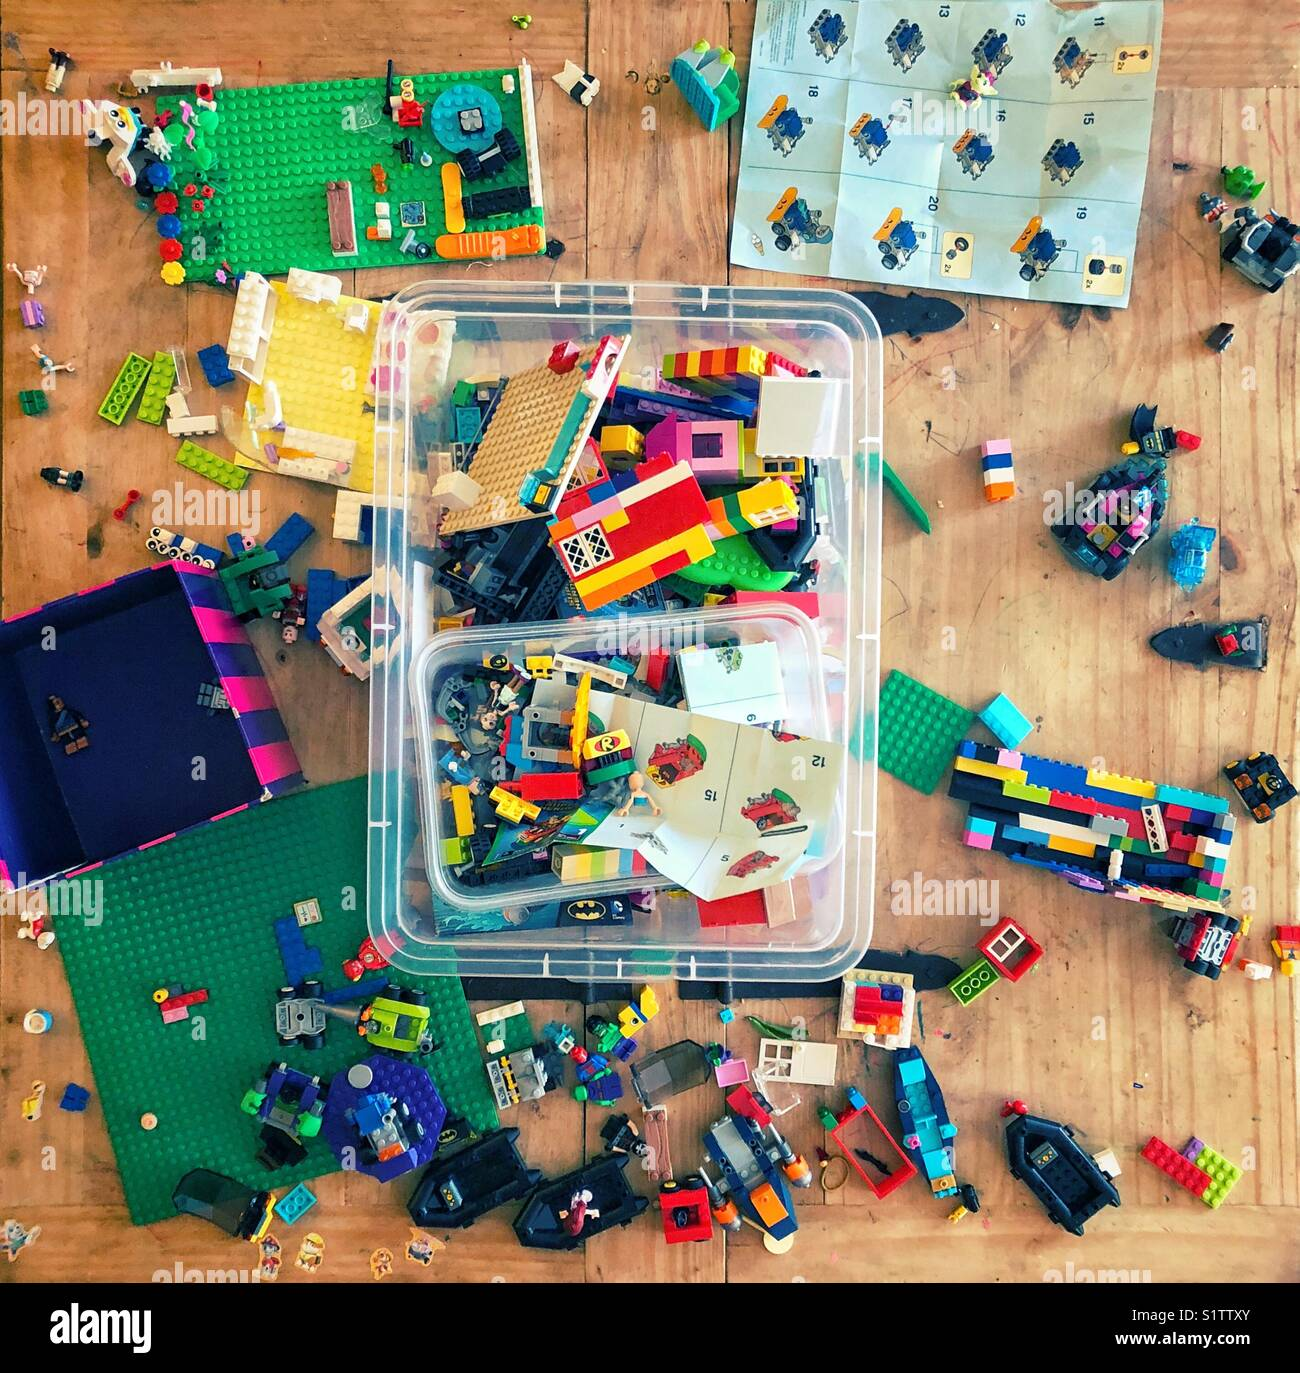 Genuine mess of LEGO blocks made by children after playing for hours on a wooden table - Stock Image